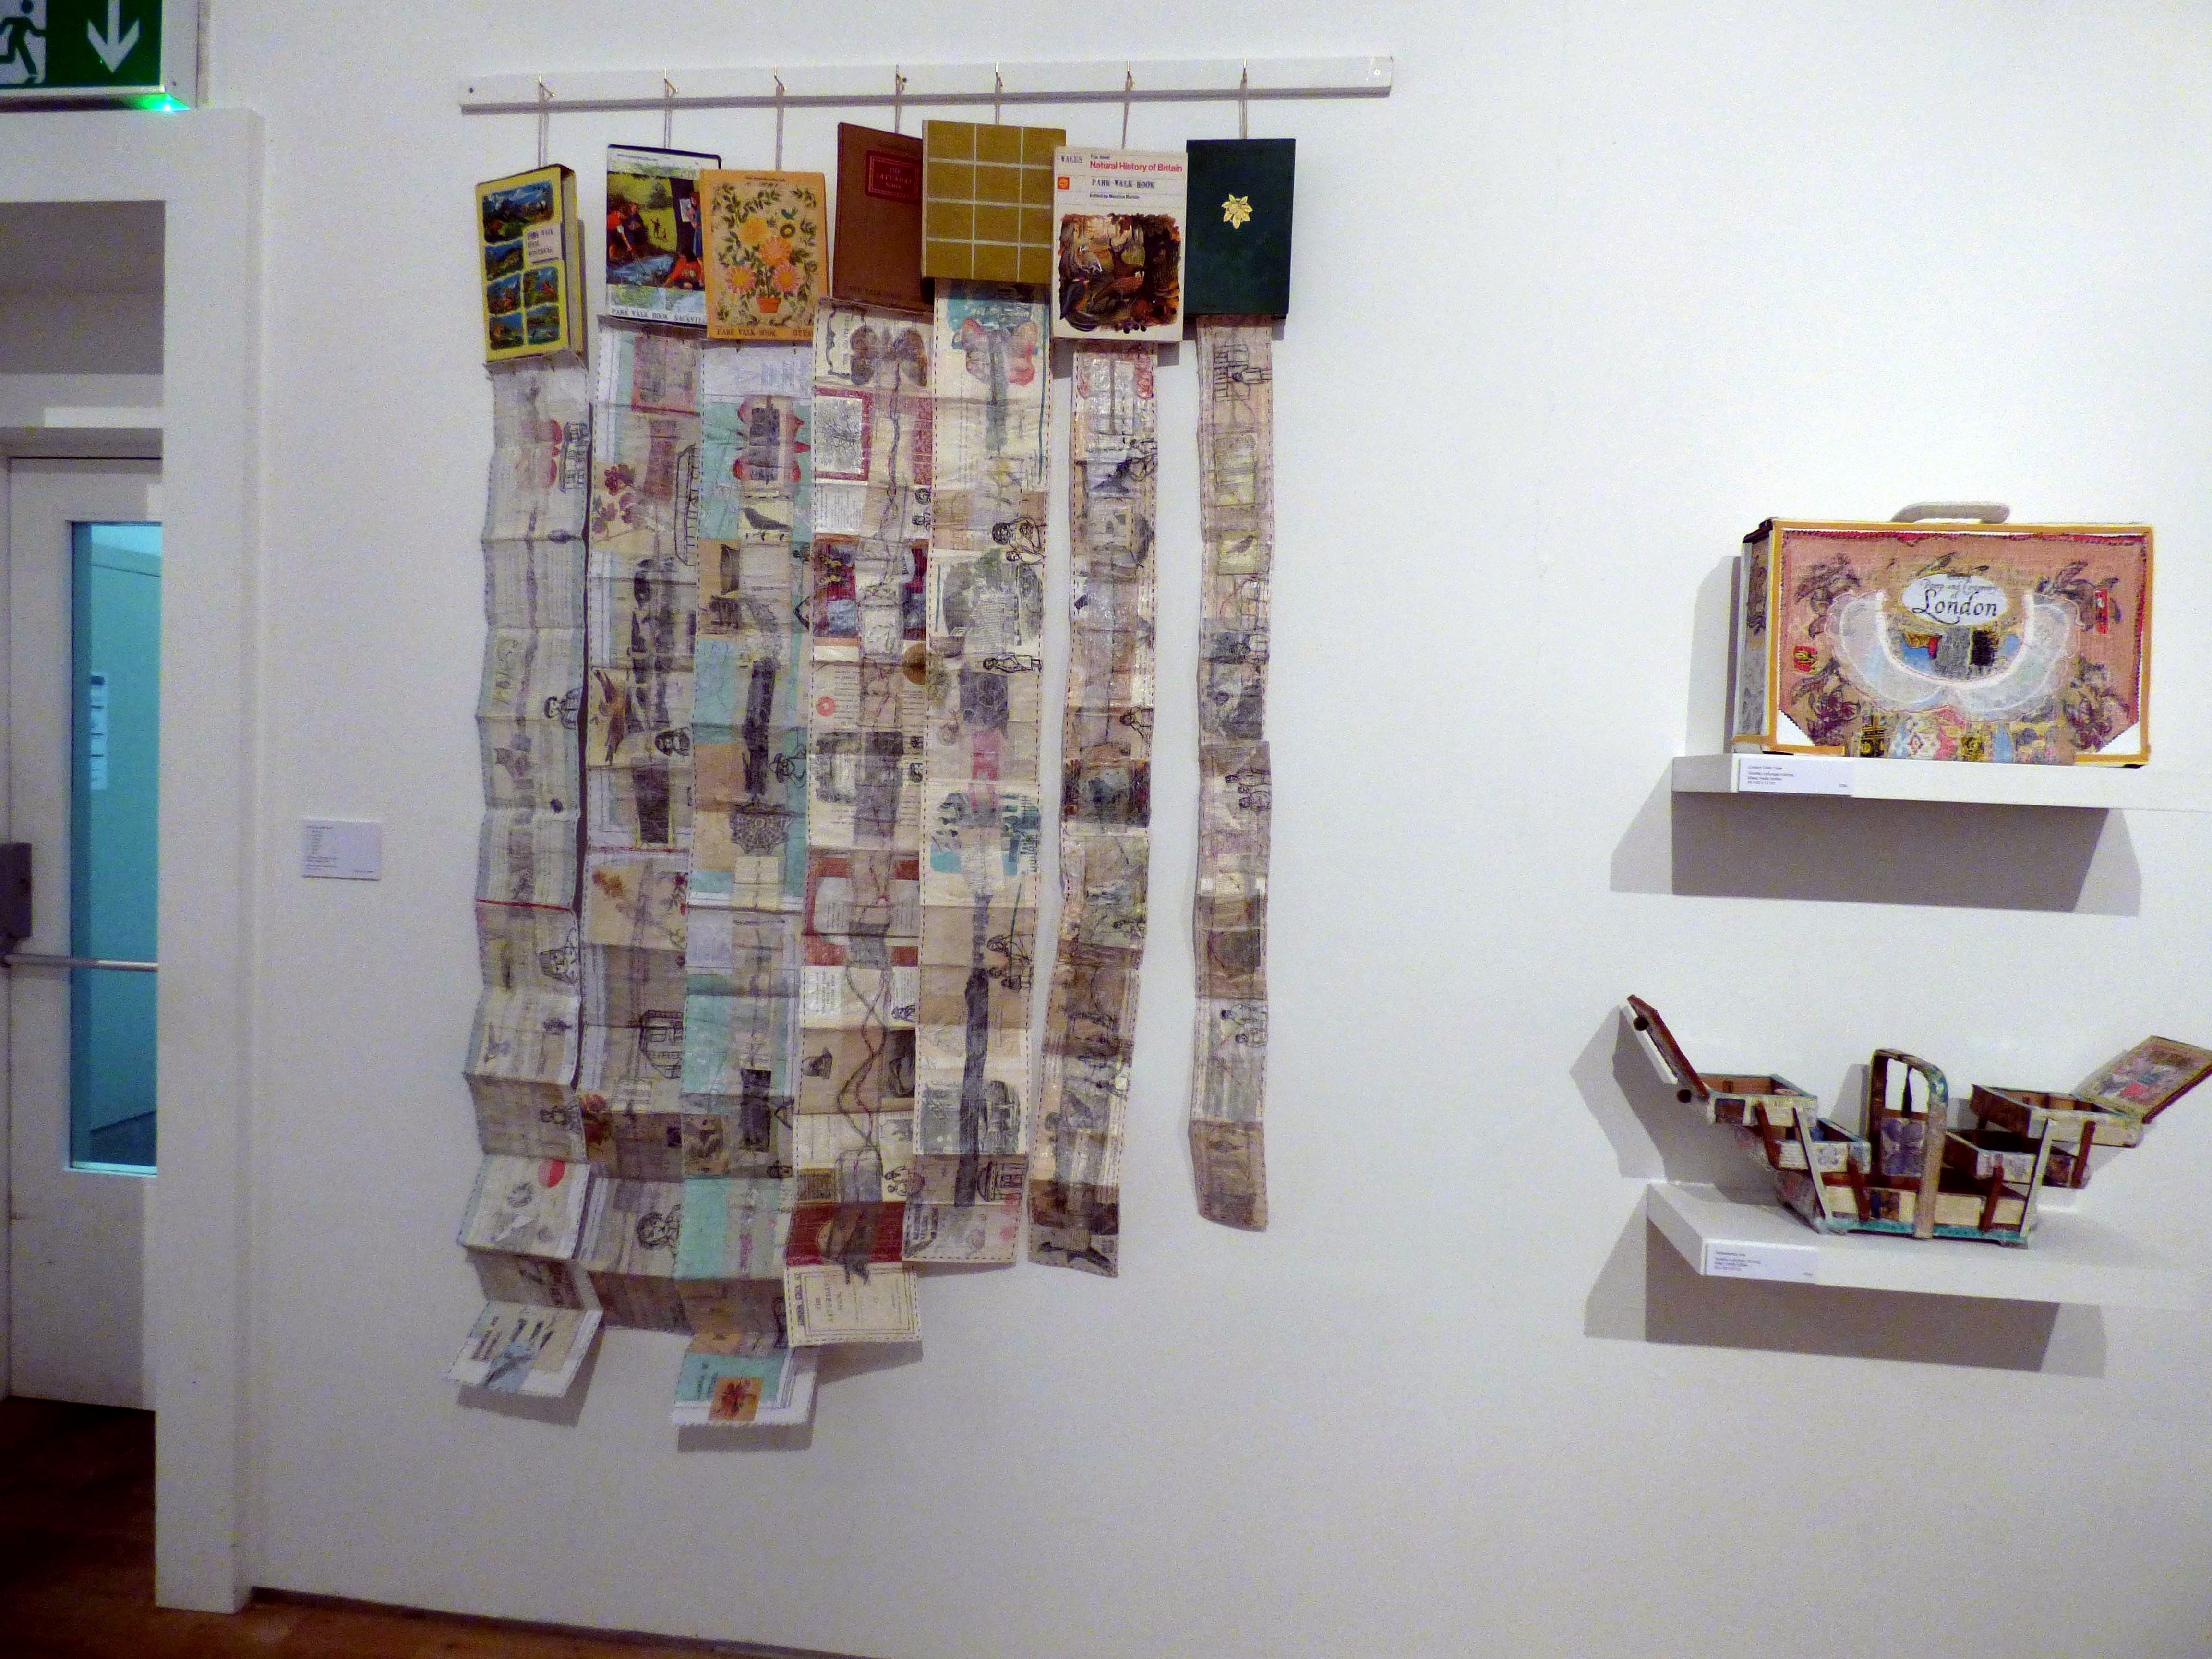 PARK WALK SKETCHBOOKS, mixed media textiles by Anne Kelly, Ruthin Craft Gallery, July 2021